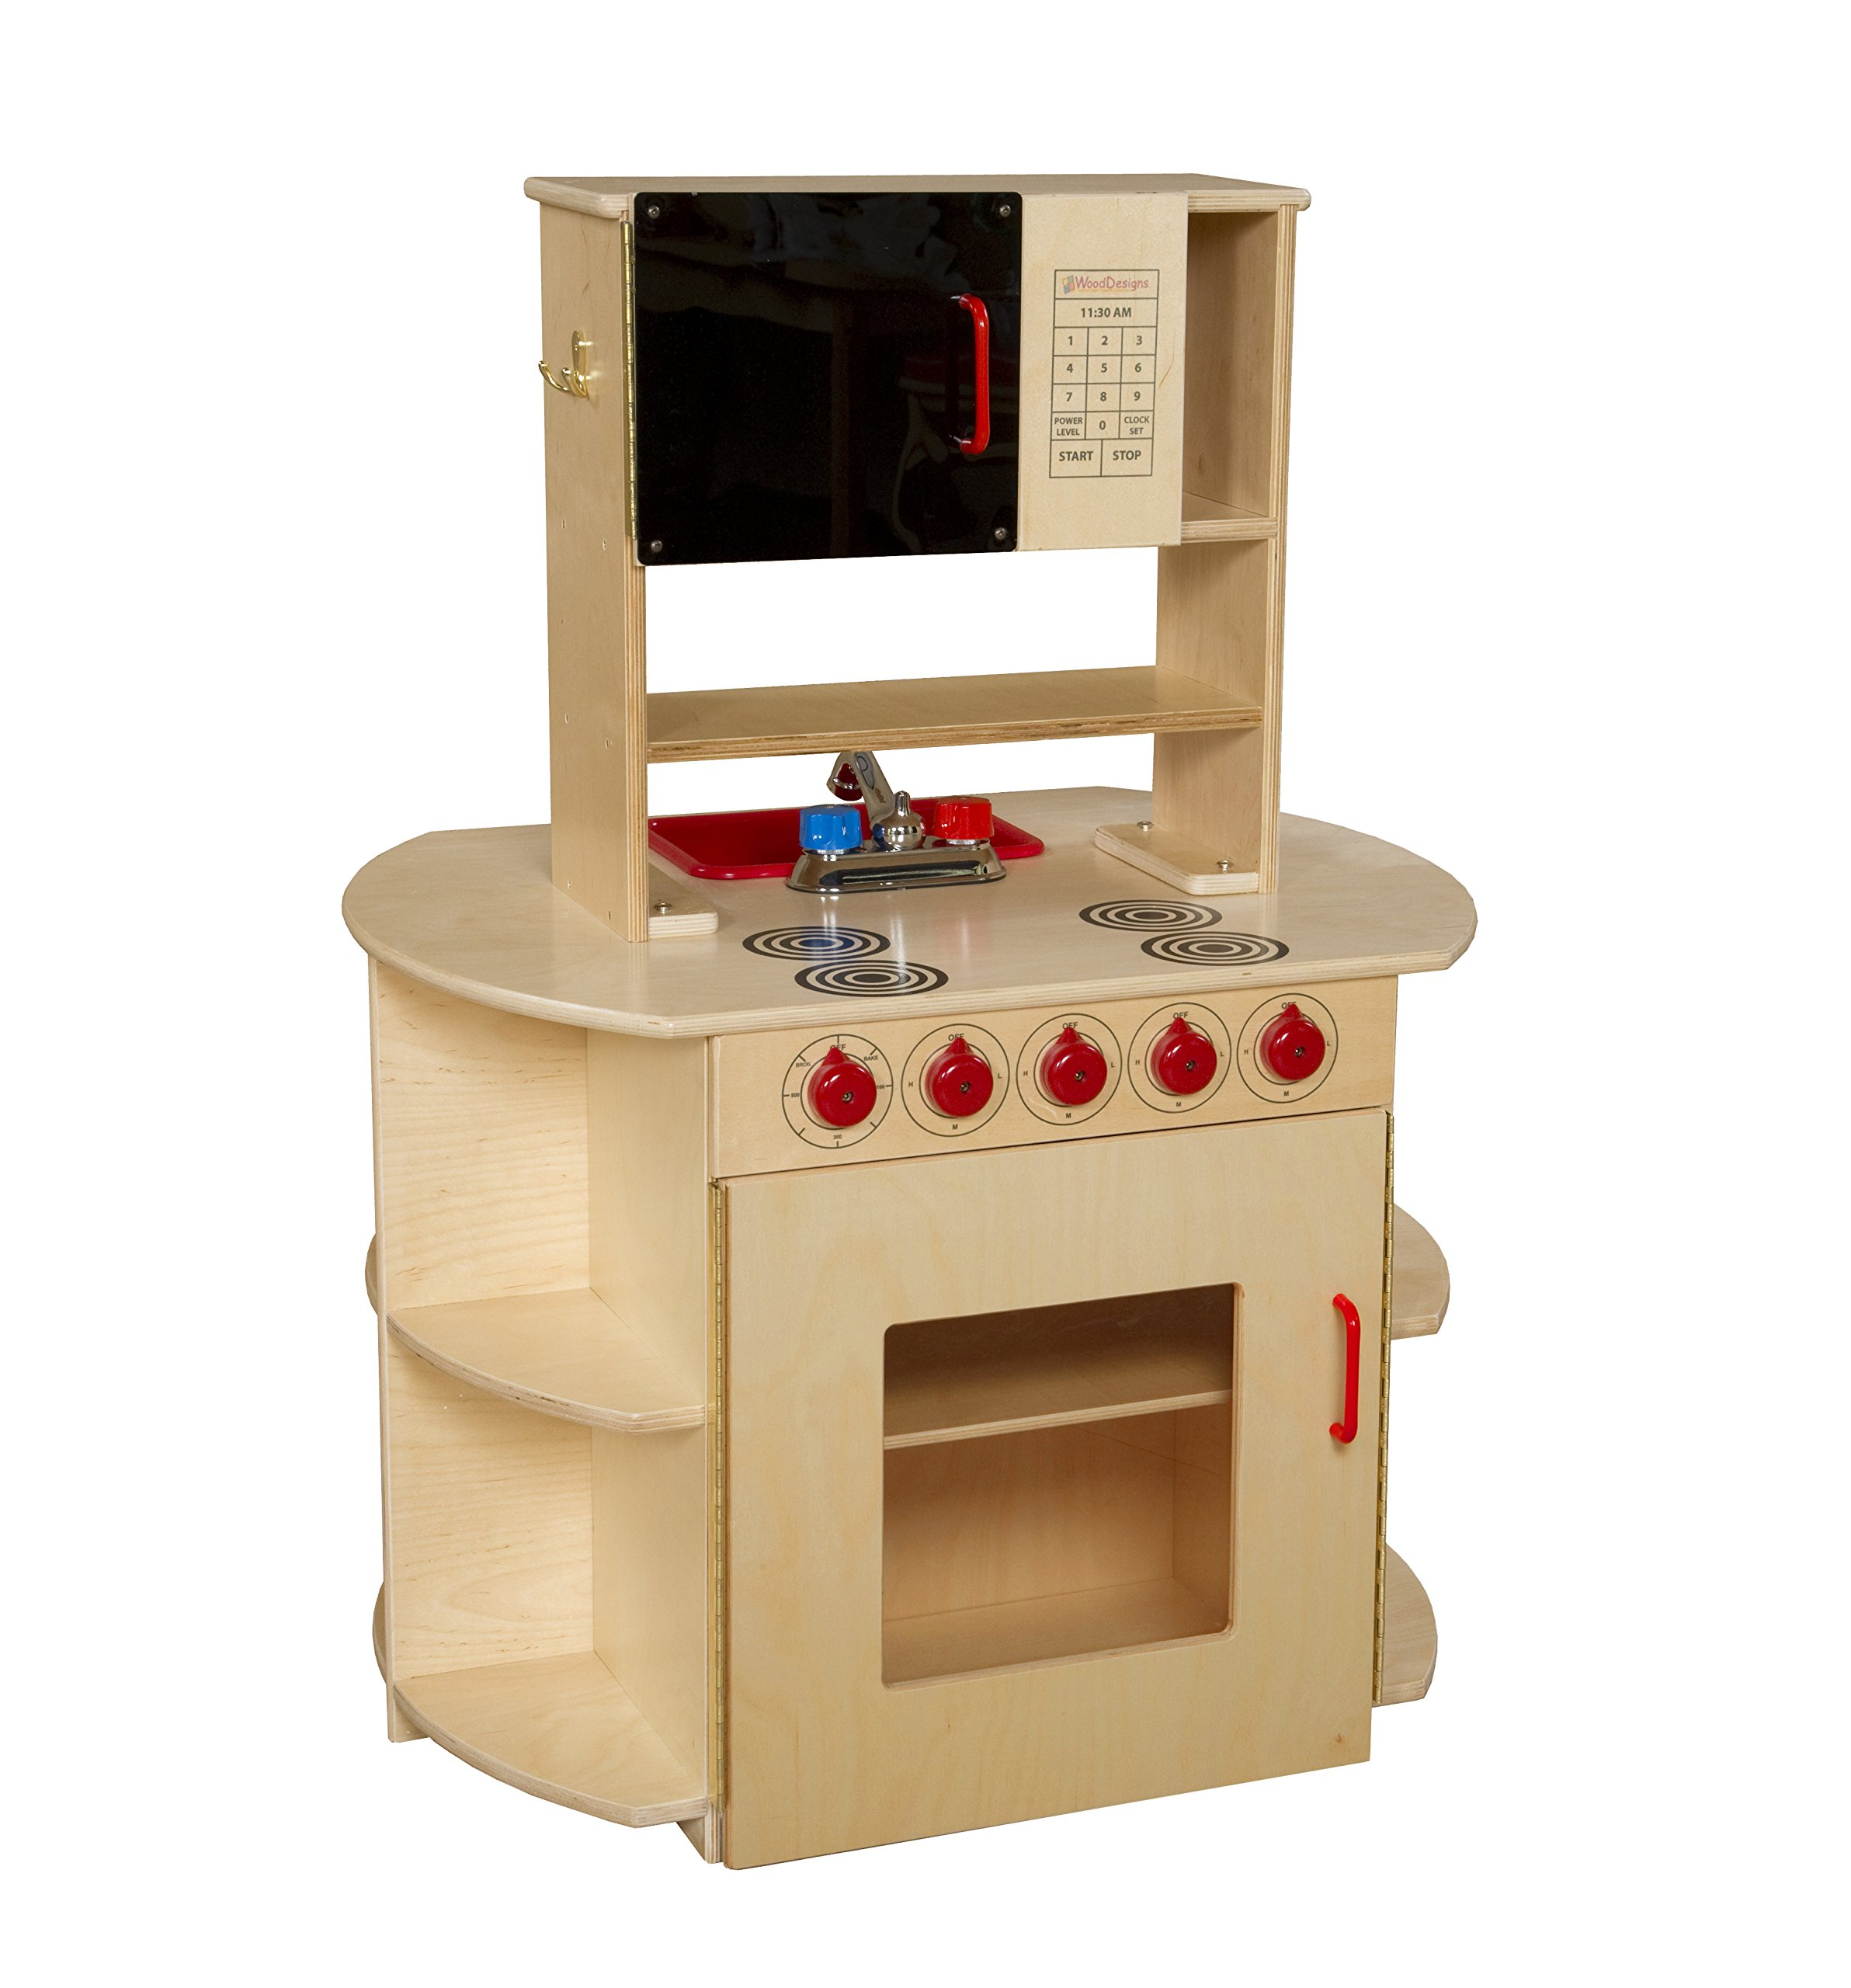 Wood Designs WD10875 All-In-One Kitchen Center